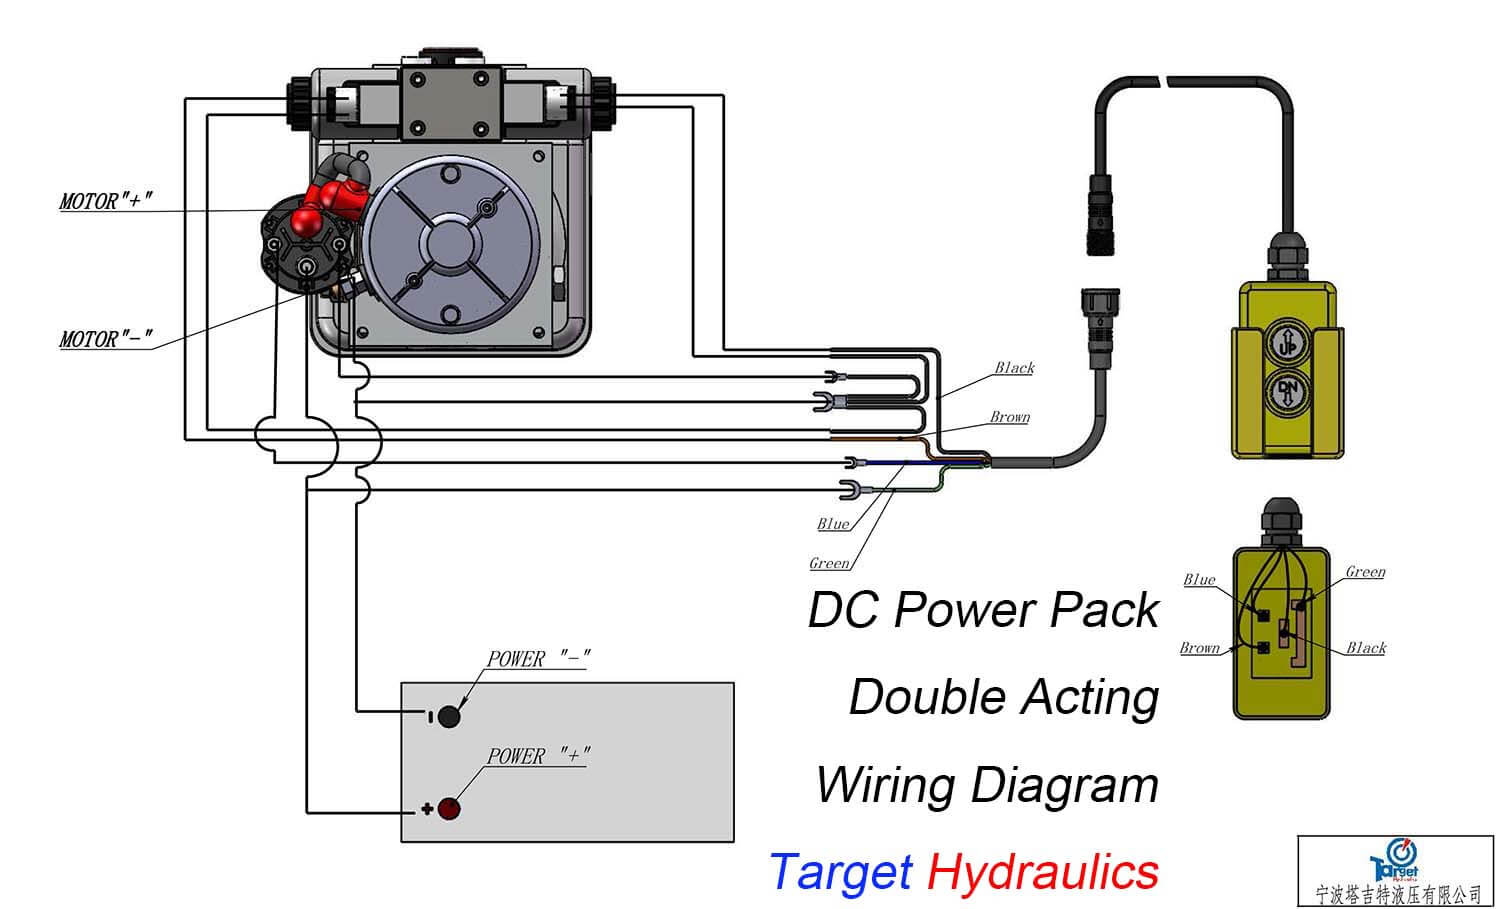 How to Wire_DC Motor Double Acting Power Pack how to wire hydraulic power pack,power unit diagram design dump trailer hydraulic pump wiring diagram at pacquiaovsvargaslive.co